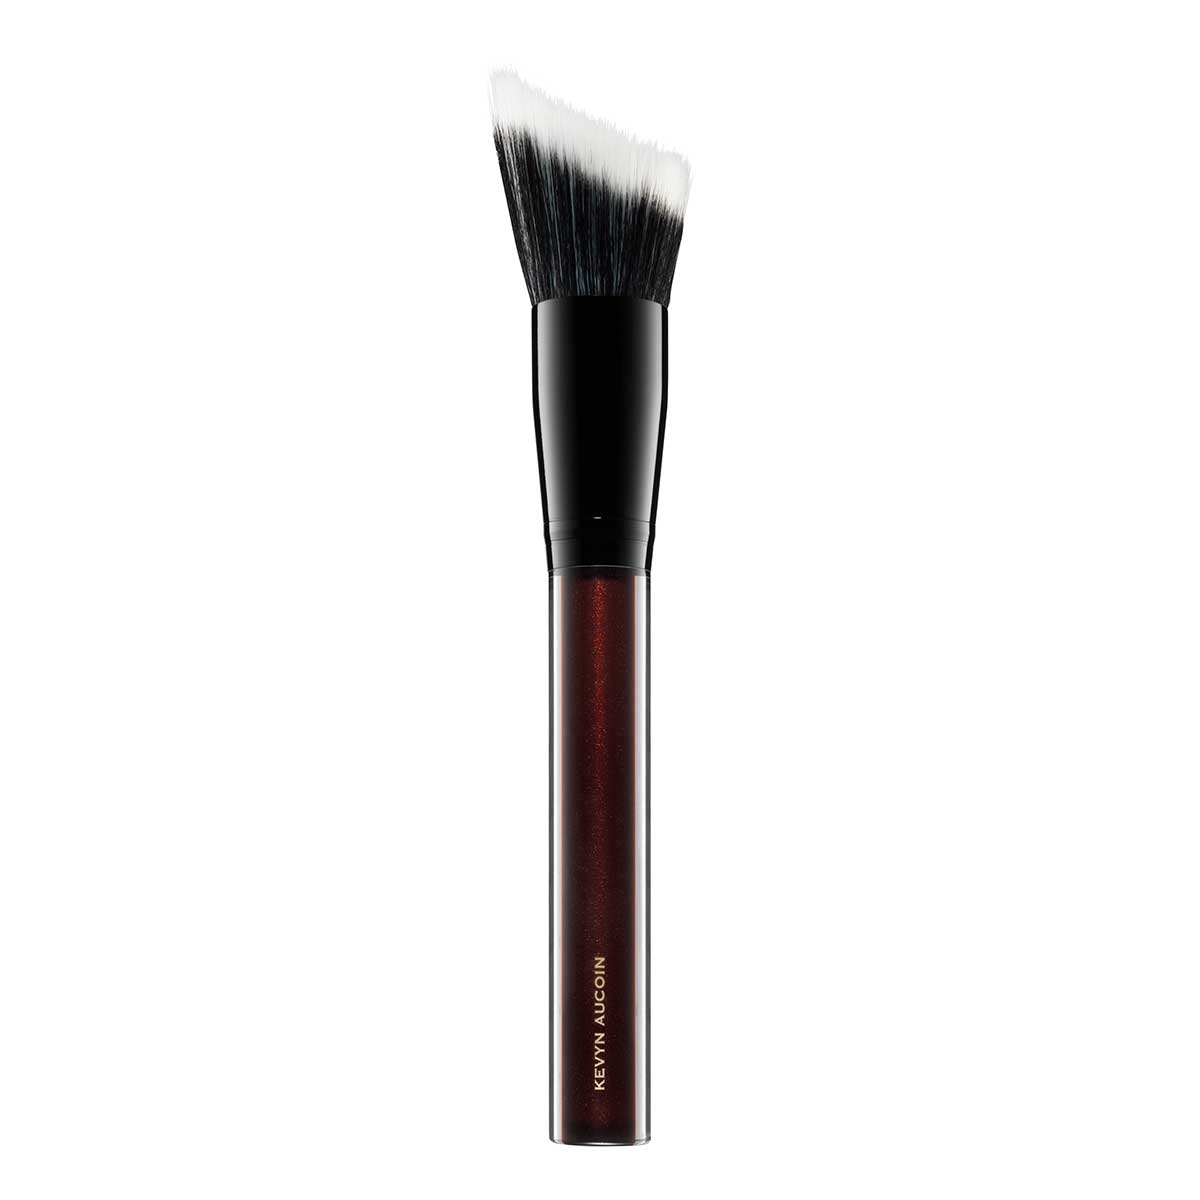 neo-powder brush